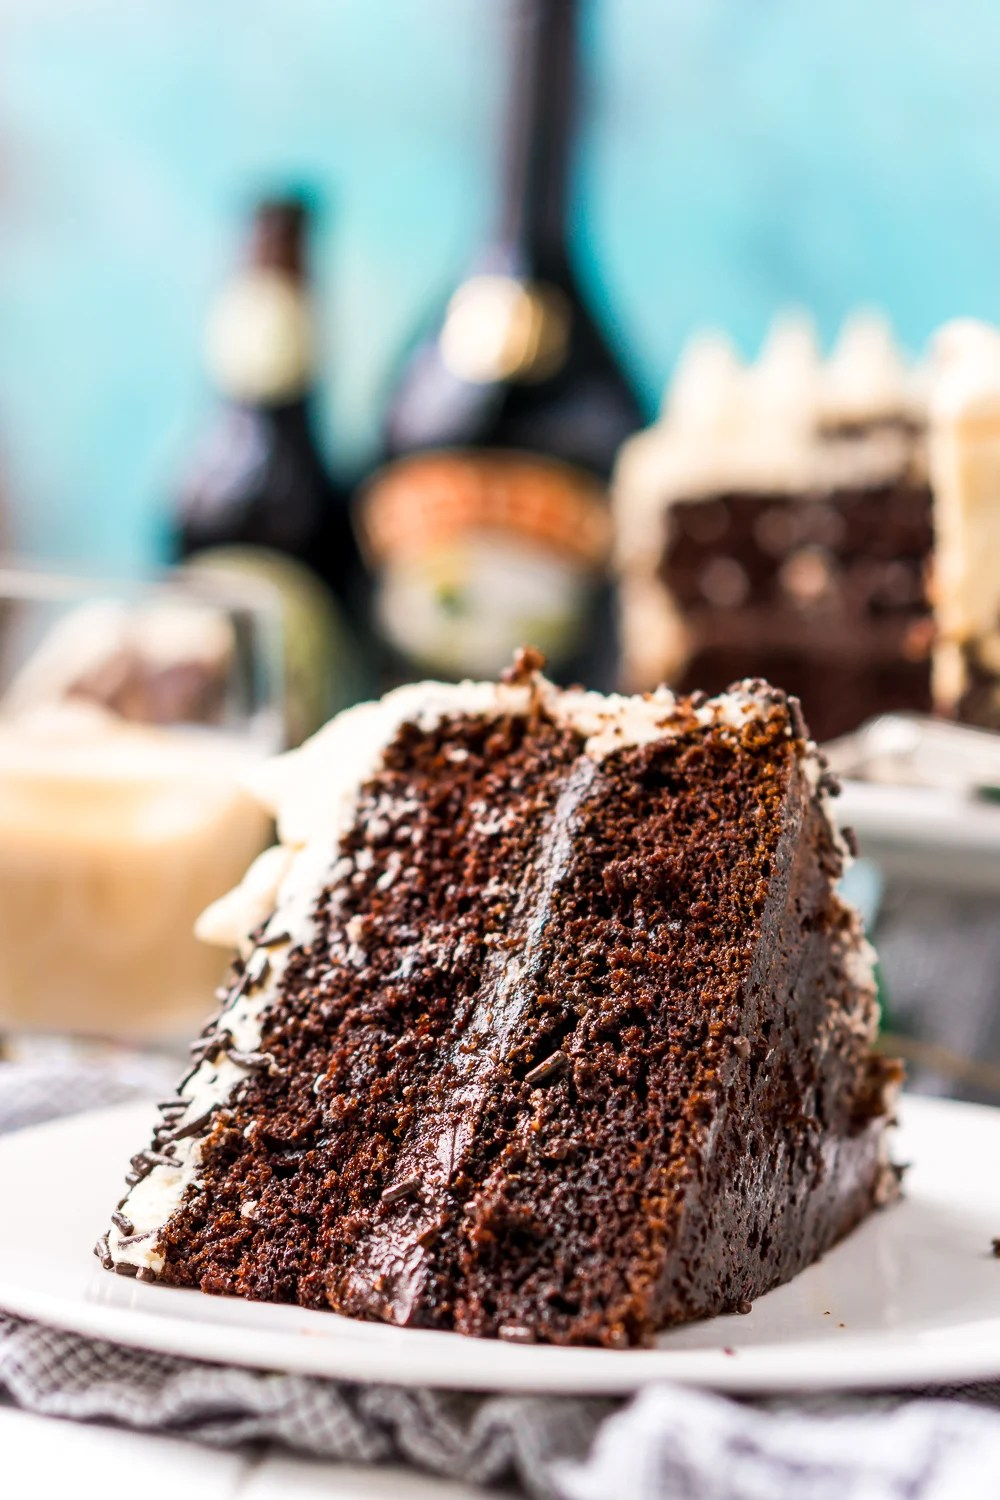 Slice of Chocolate Guinness Cake on a white plate with the rest of the cake, bottle of stout and irish cream in the background.